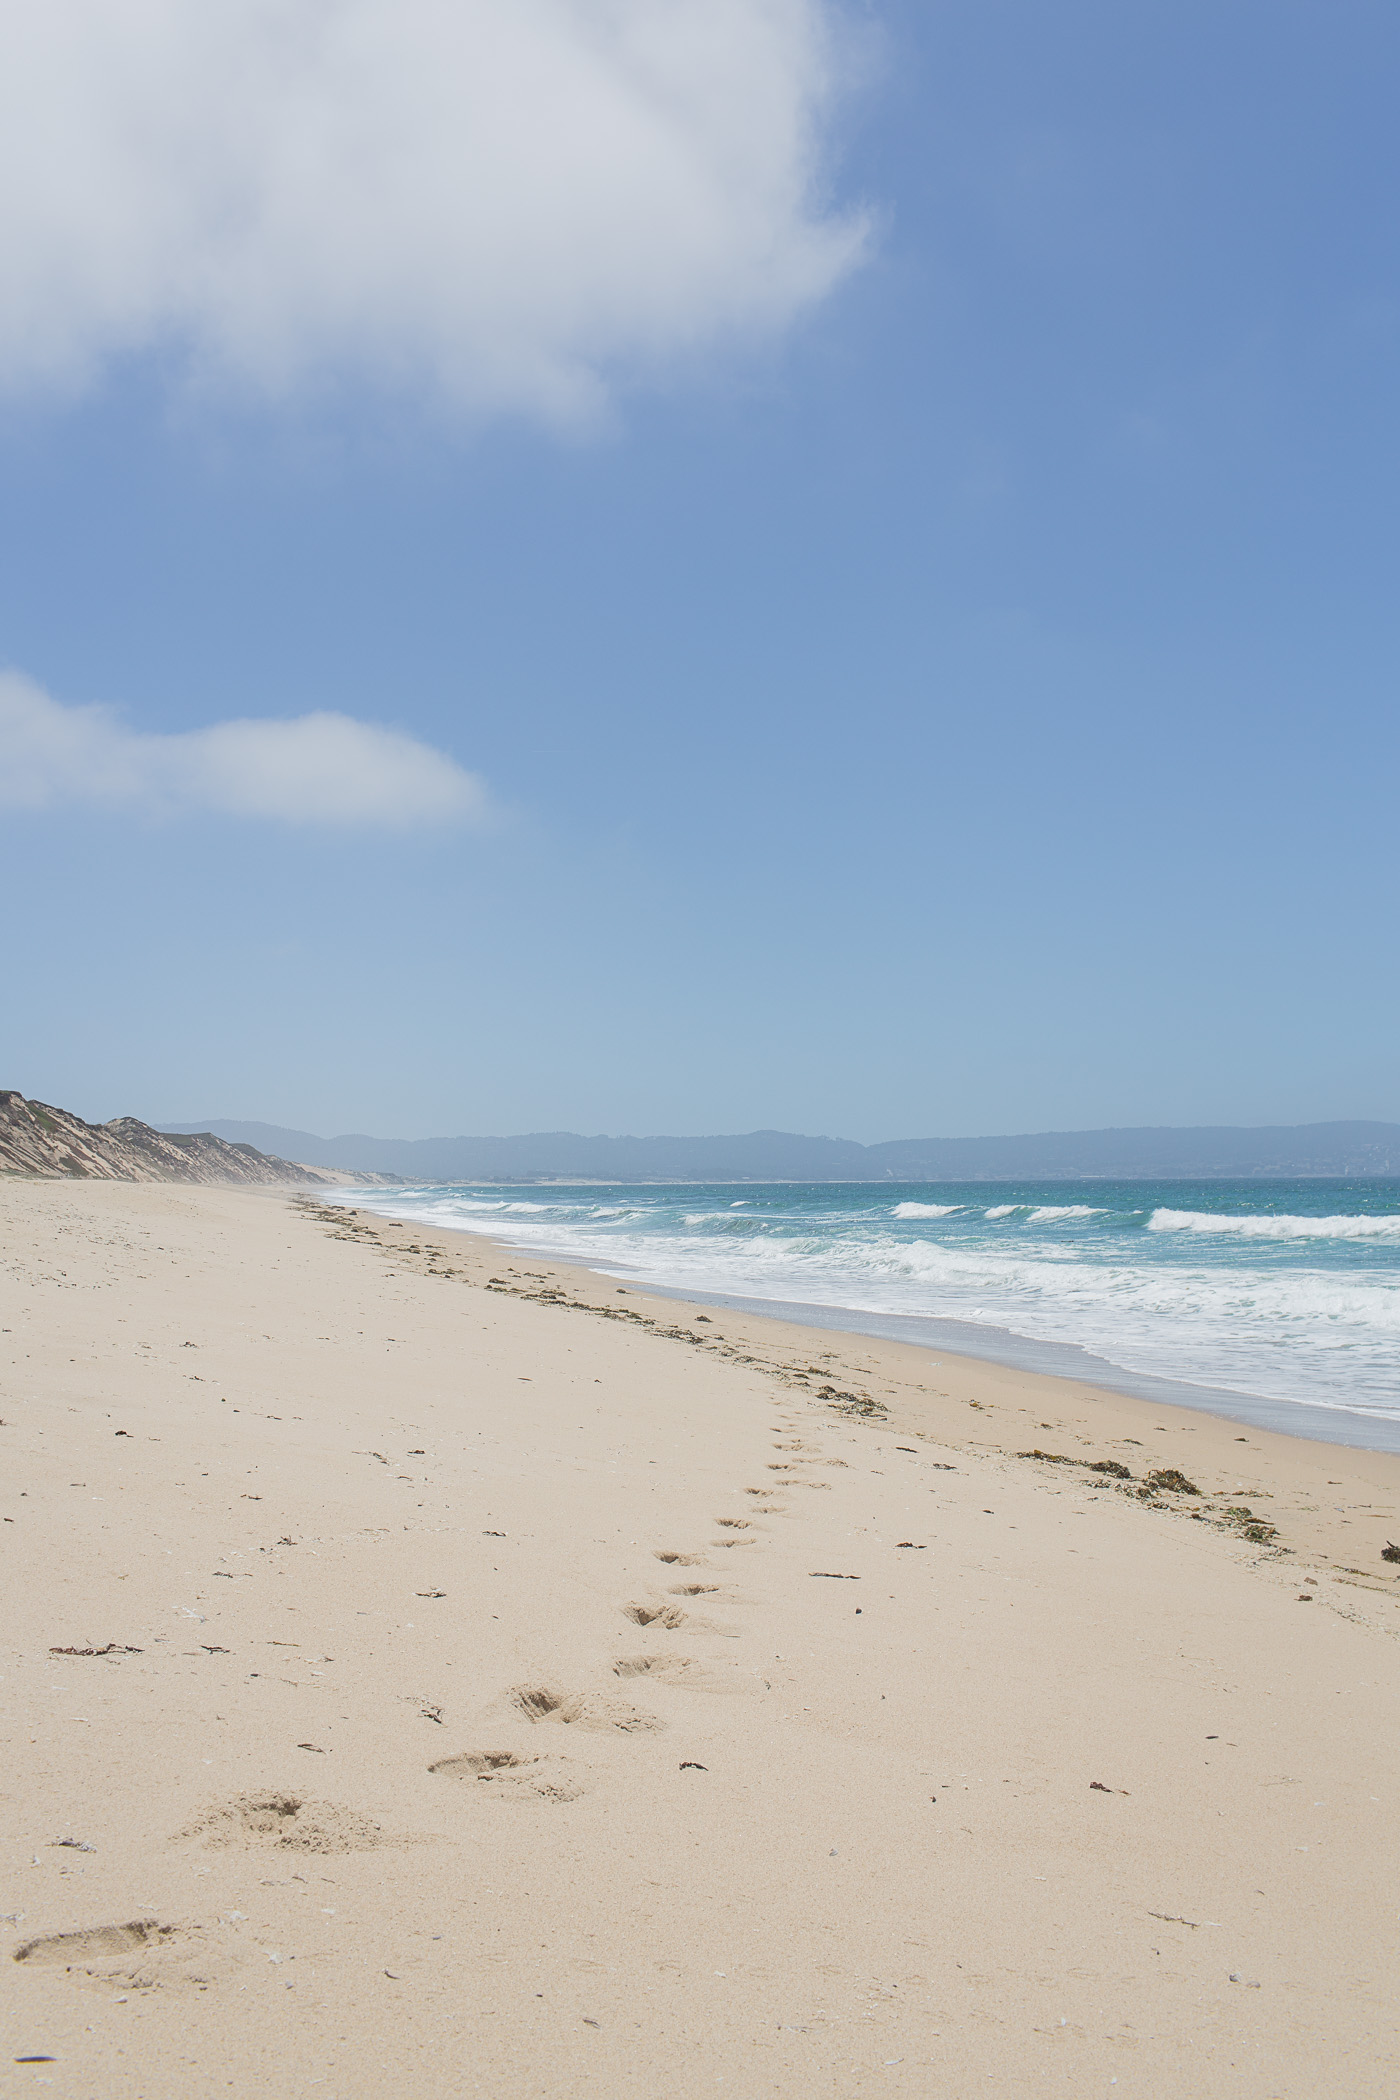 Fort Ord Dunes near Monterey, California